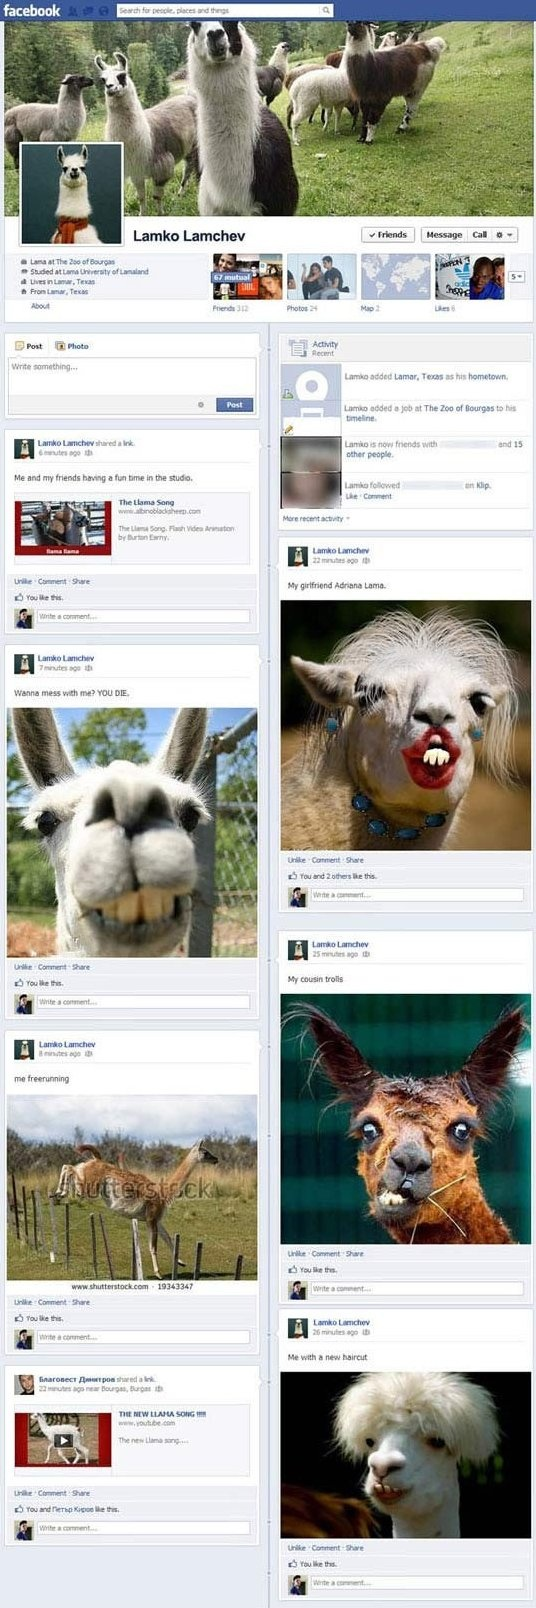 Funny Pictures - llamas on Facebook - www.funny-pictures-blog.com